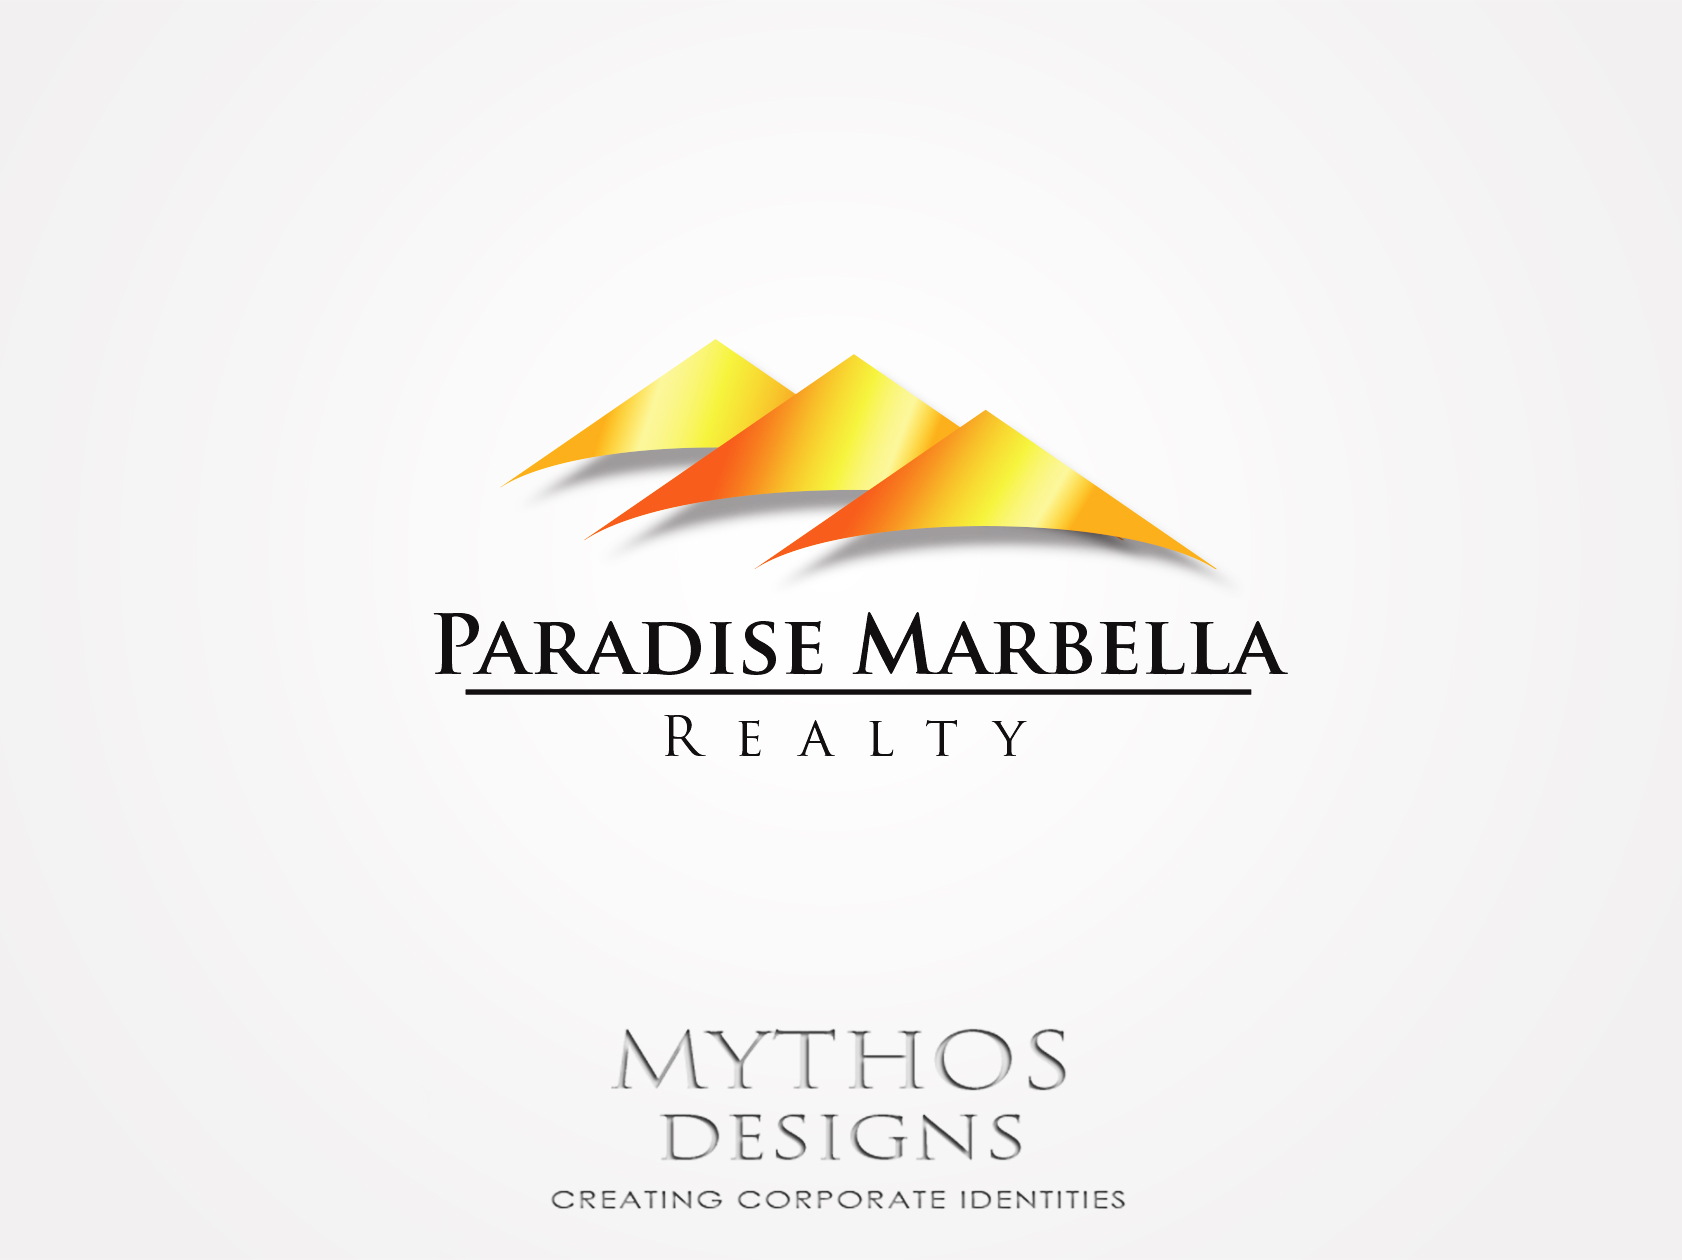 Logo Design by Mythos Designs - Entry No. 48 in the Logo Design Contest Captivating Logo Design for Paradise Marbella Realty.